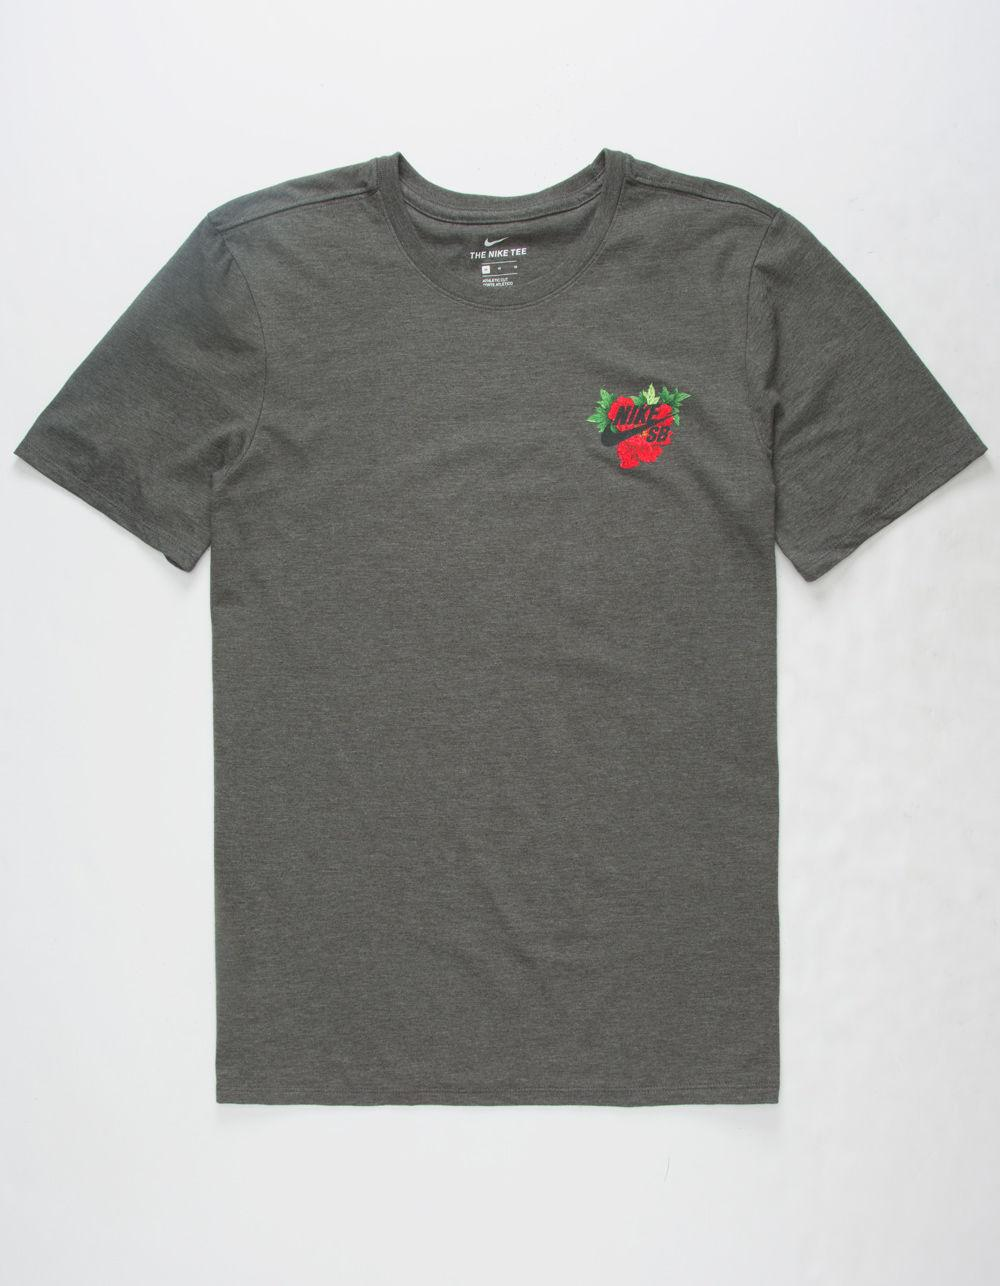 31e23a2cc96f Lyst - Nike Colorful Hibiscus Mens T-shirt in Gray for Men